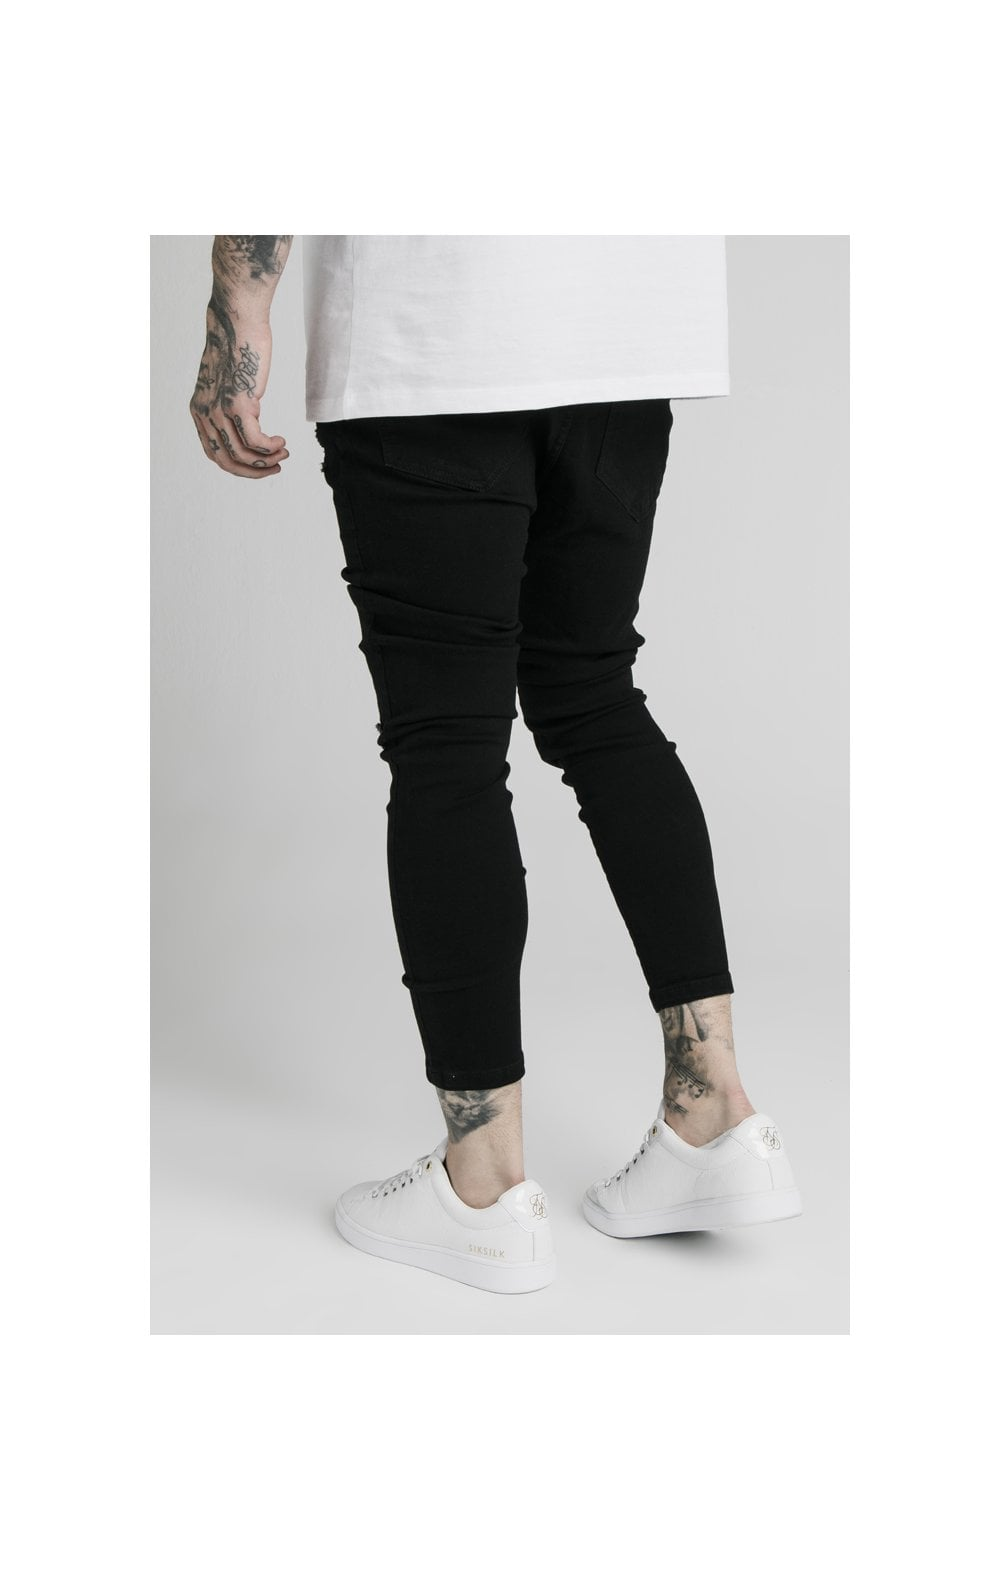 SikSilk Ultra Drop Crotch Denims - Black (4)